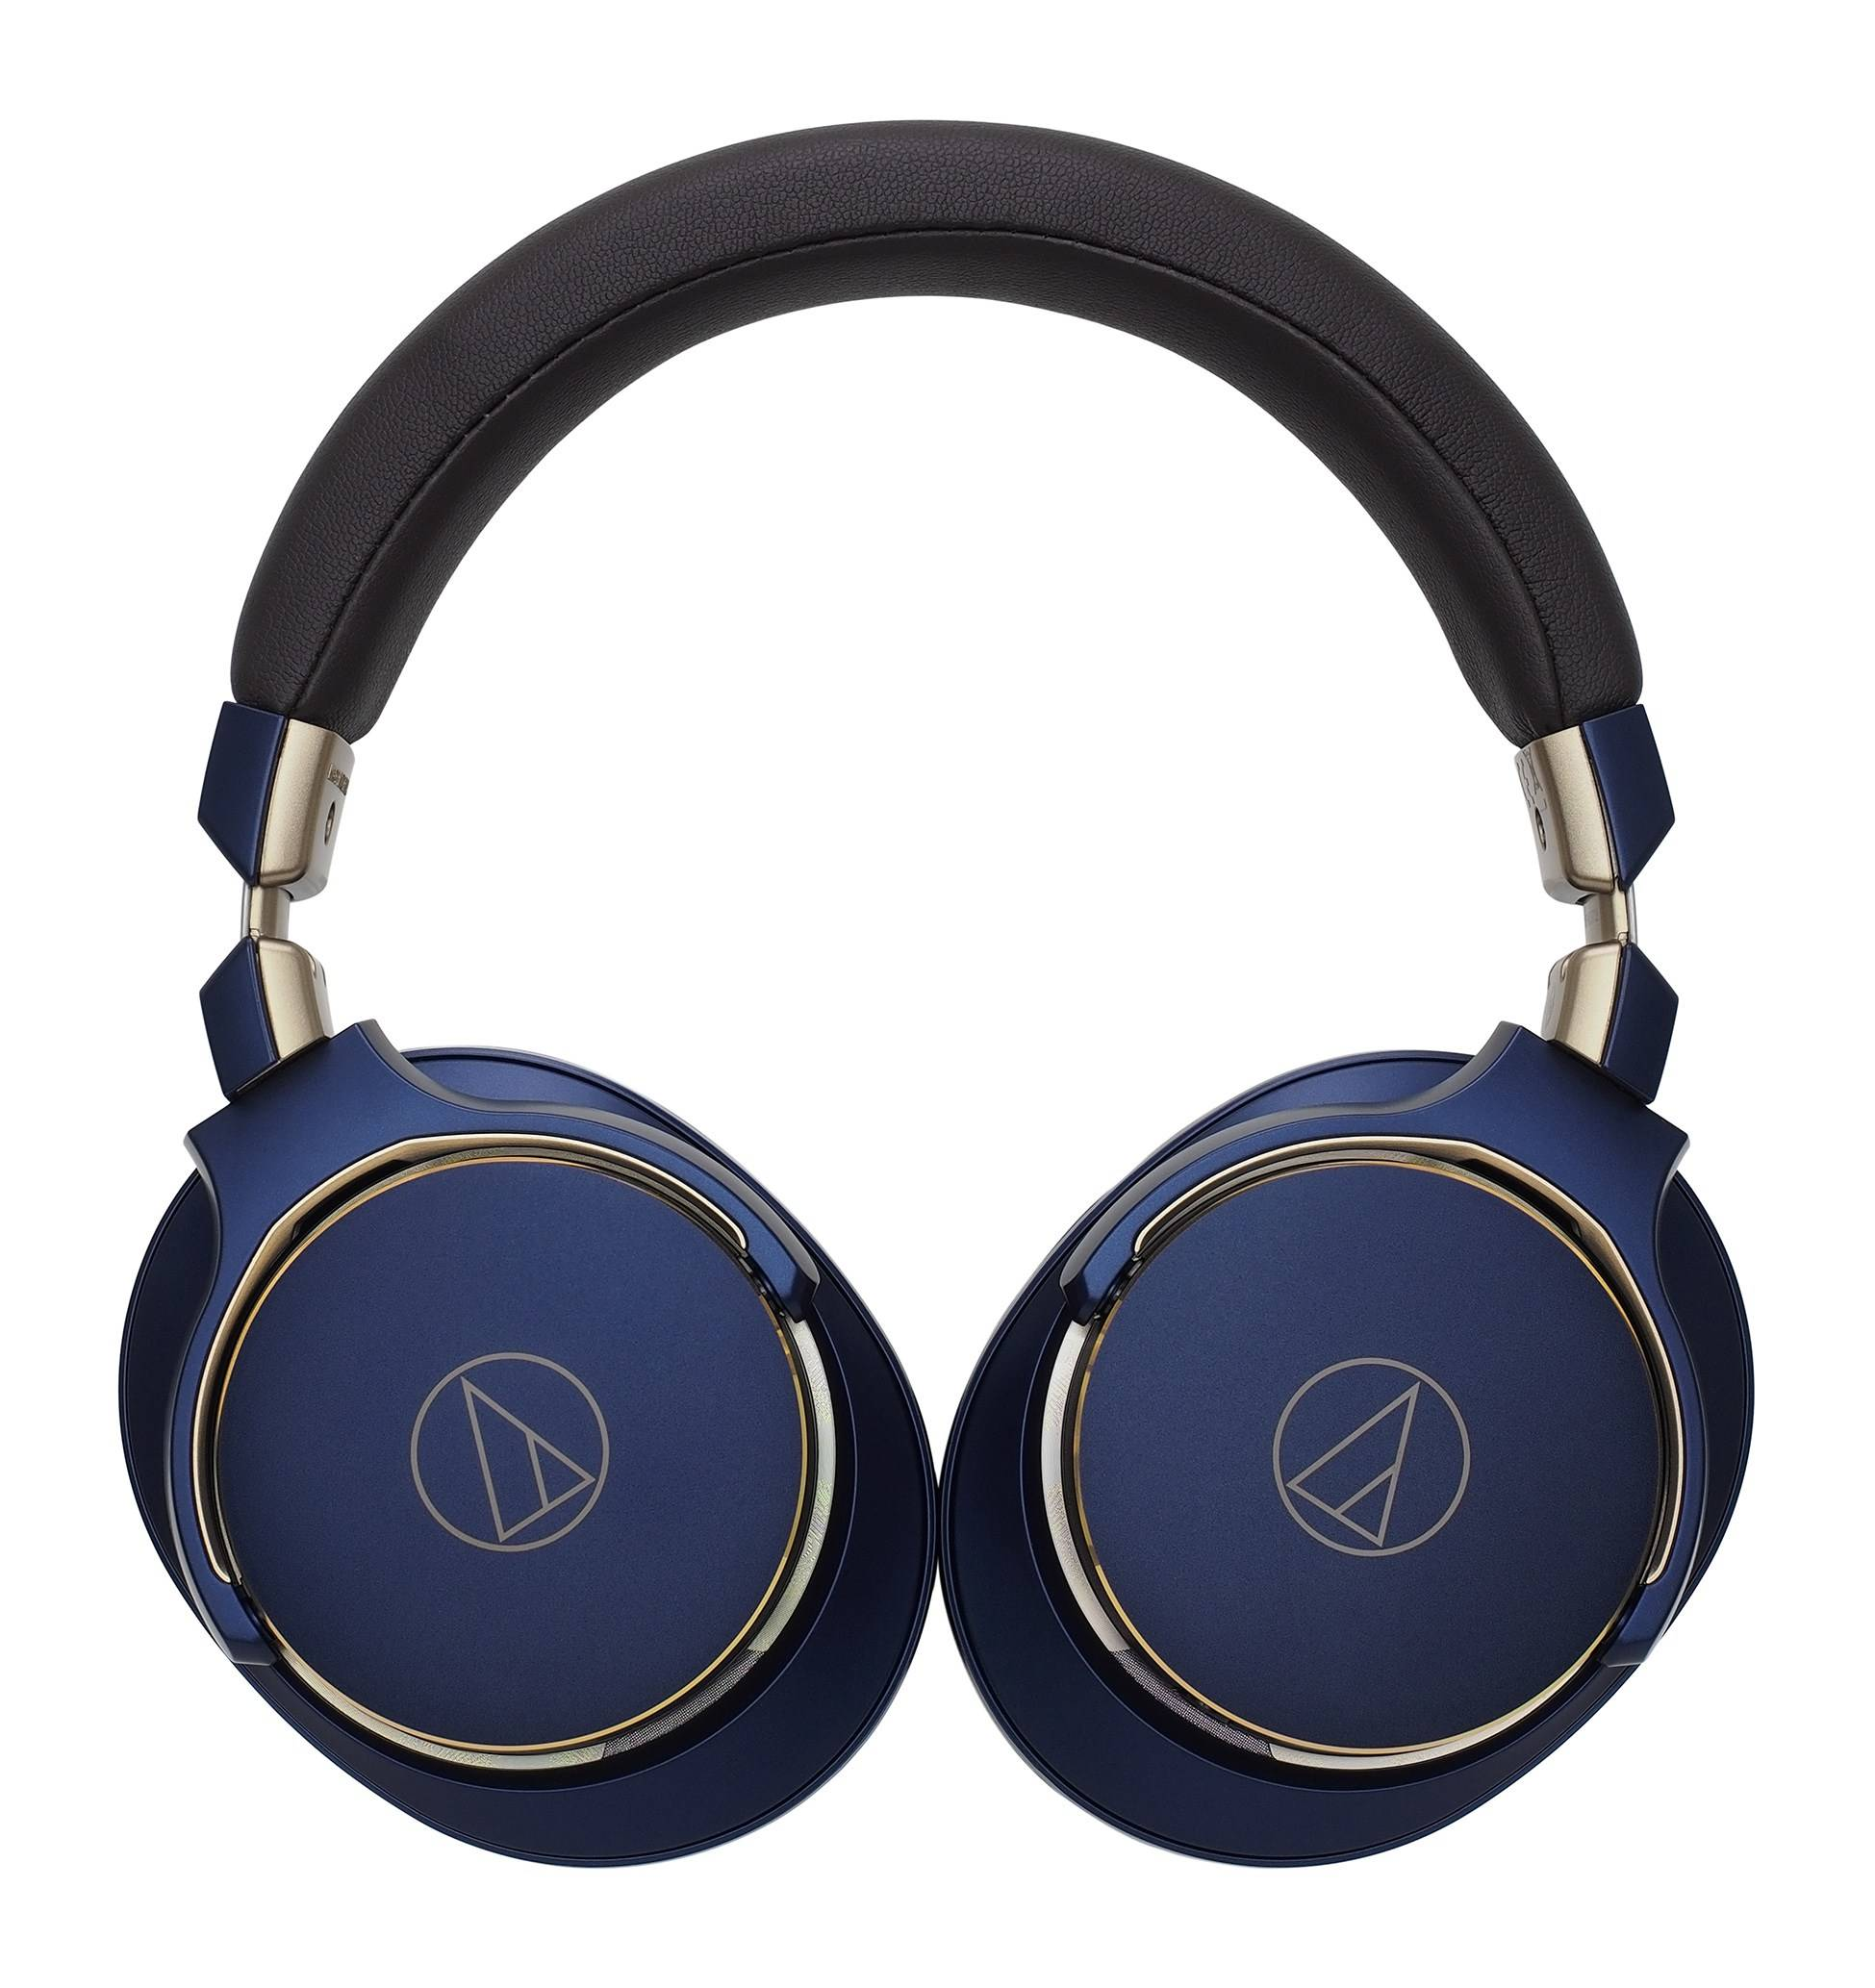 Audio-Technica MSR7 Special Edition